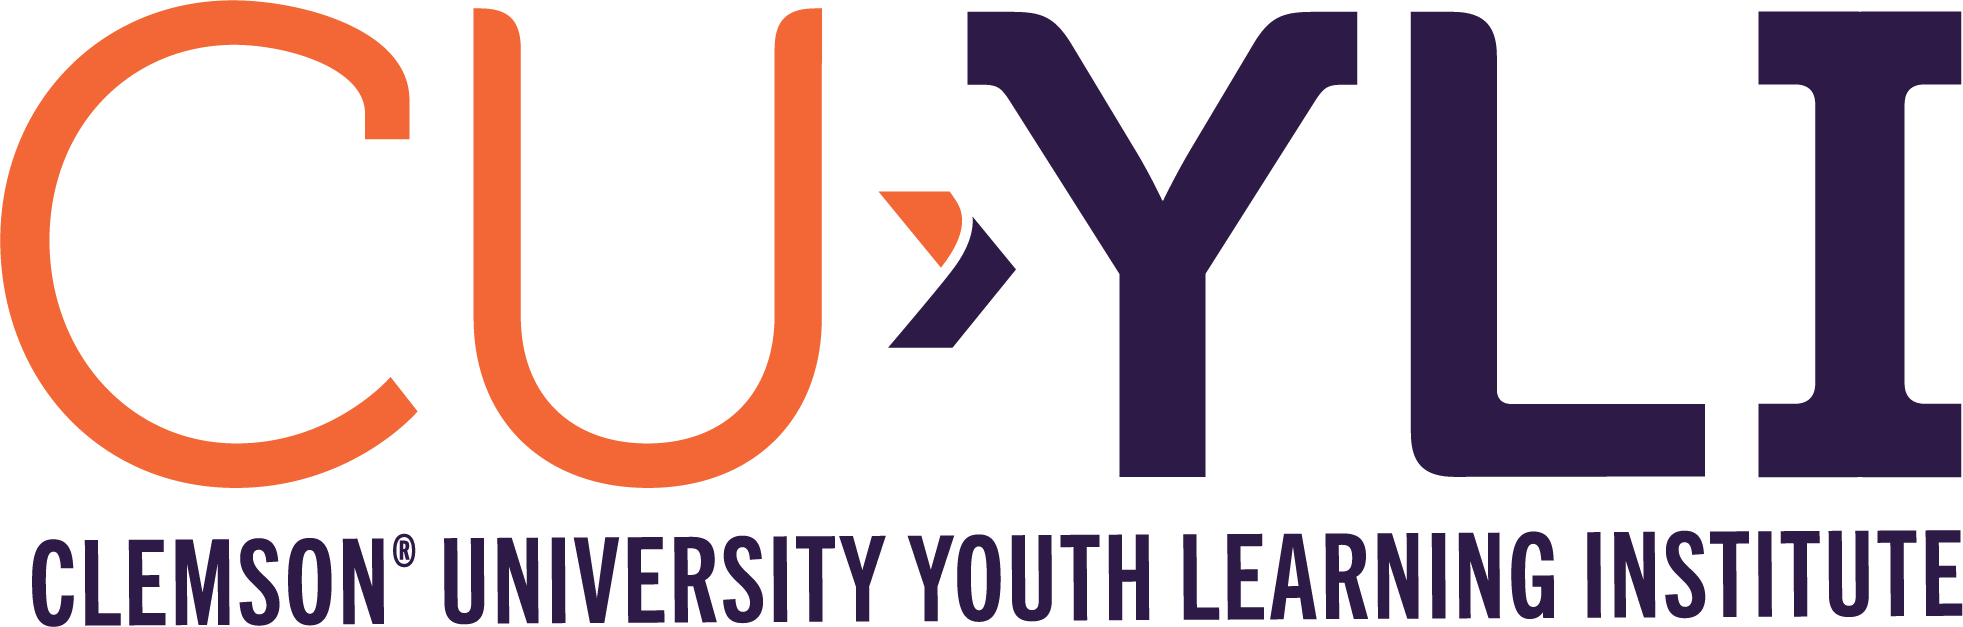 Clemson Youth Learning Institute